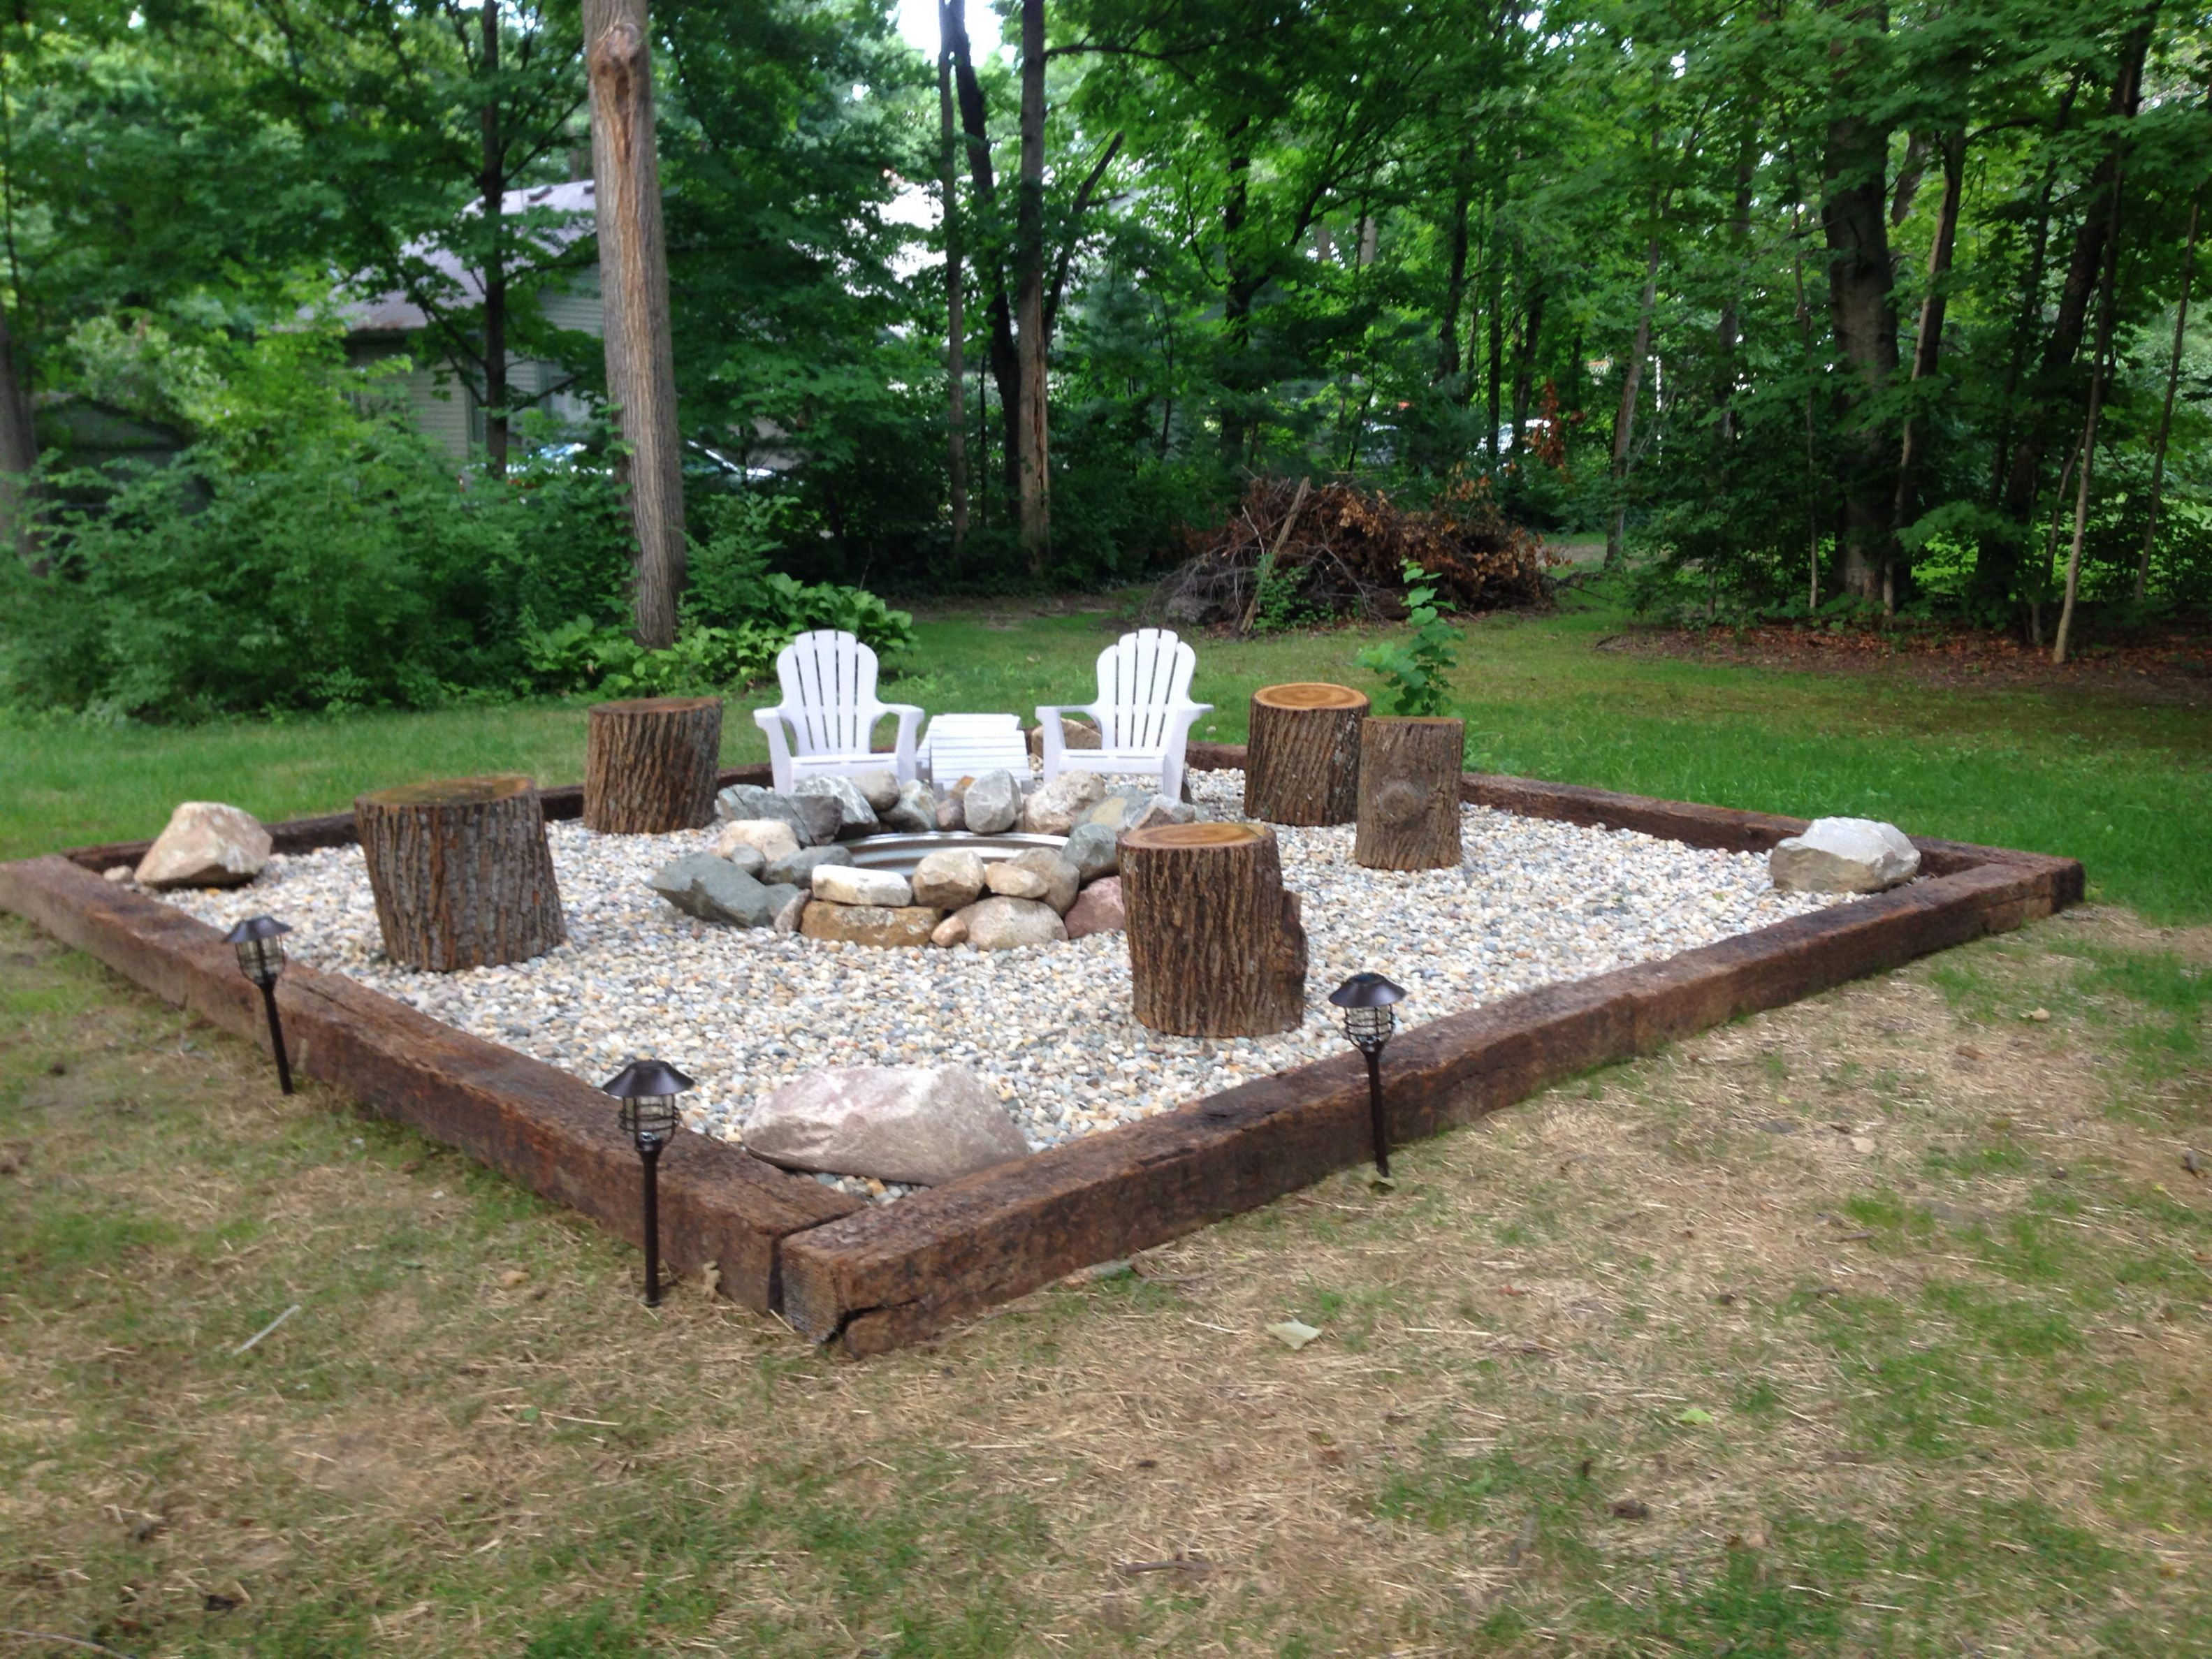 30 Best Backyard Fire Pit Area Inspirations For Your Cozy And Rustic throughout dimensions 3166 X 2375